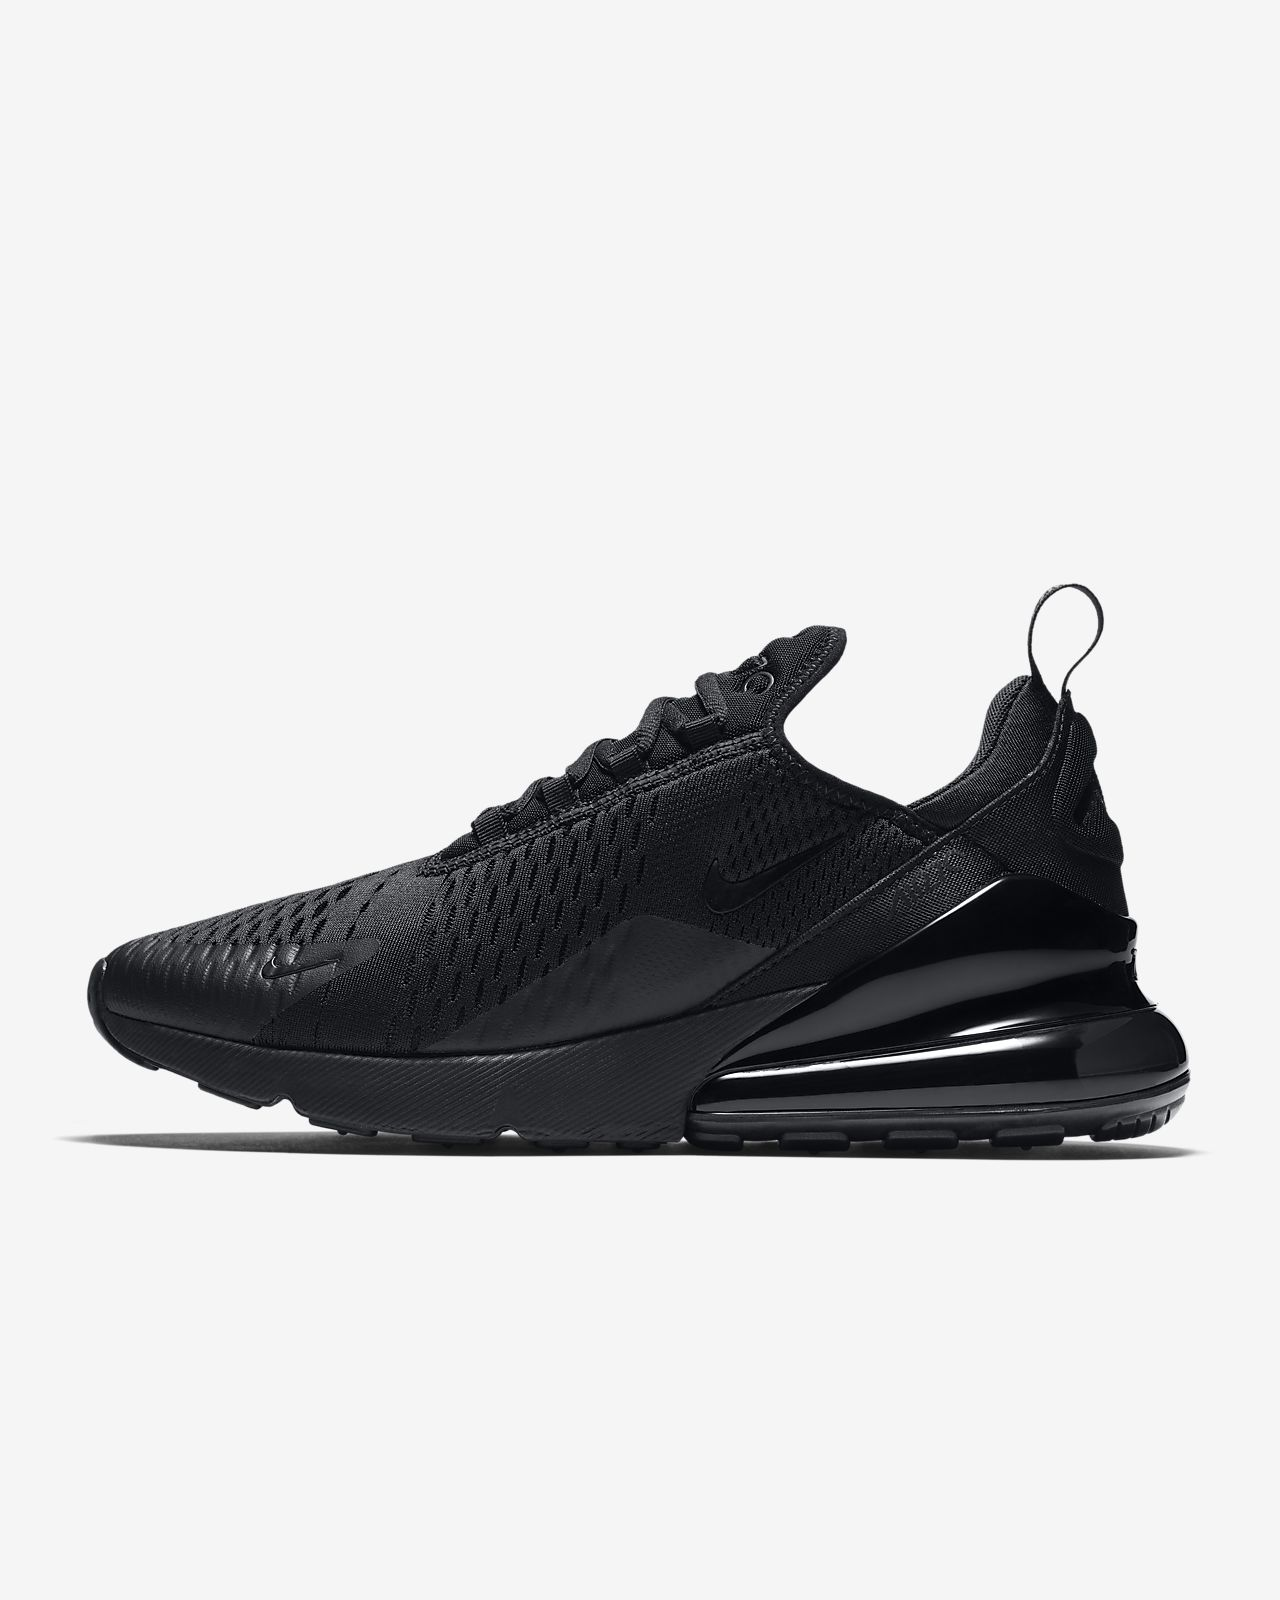 9be22dd30b7 Nike Air Max 270 Men s Shoe. Nike.com CA